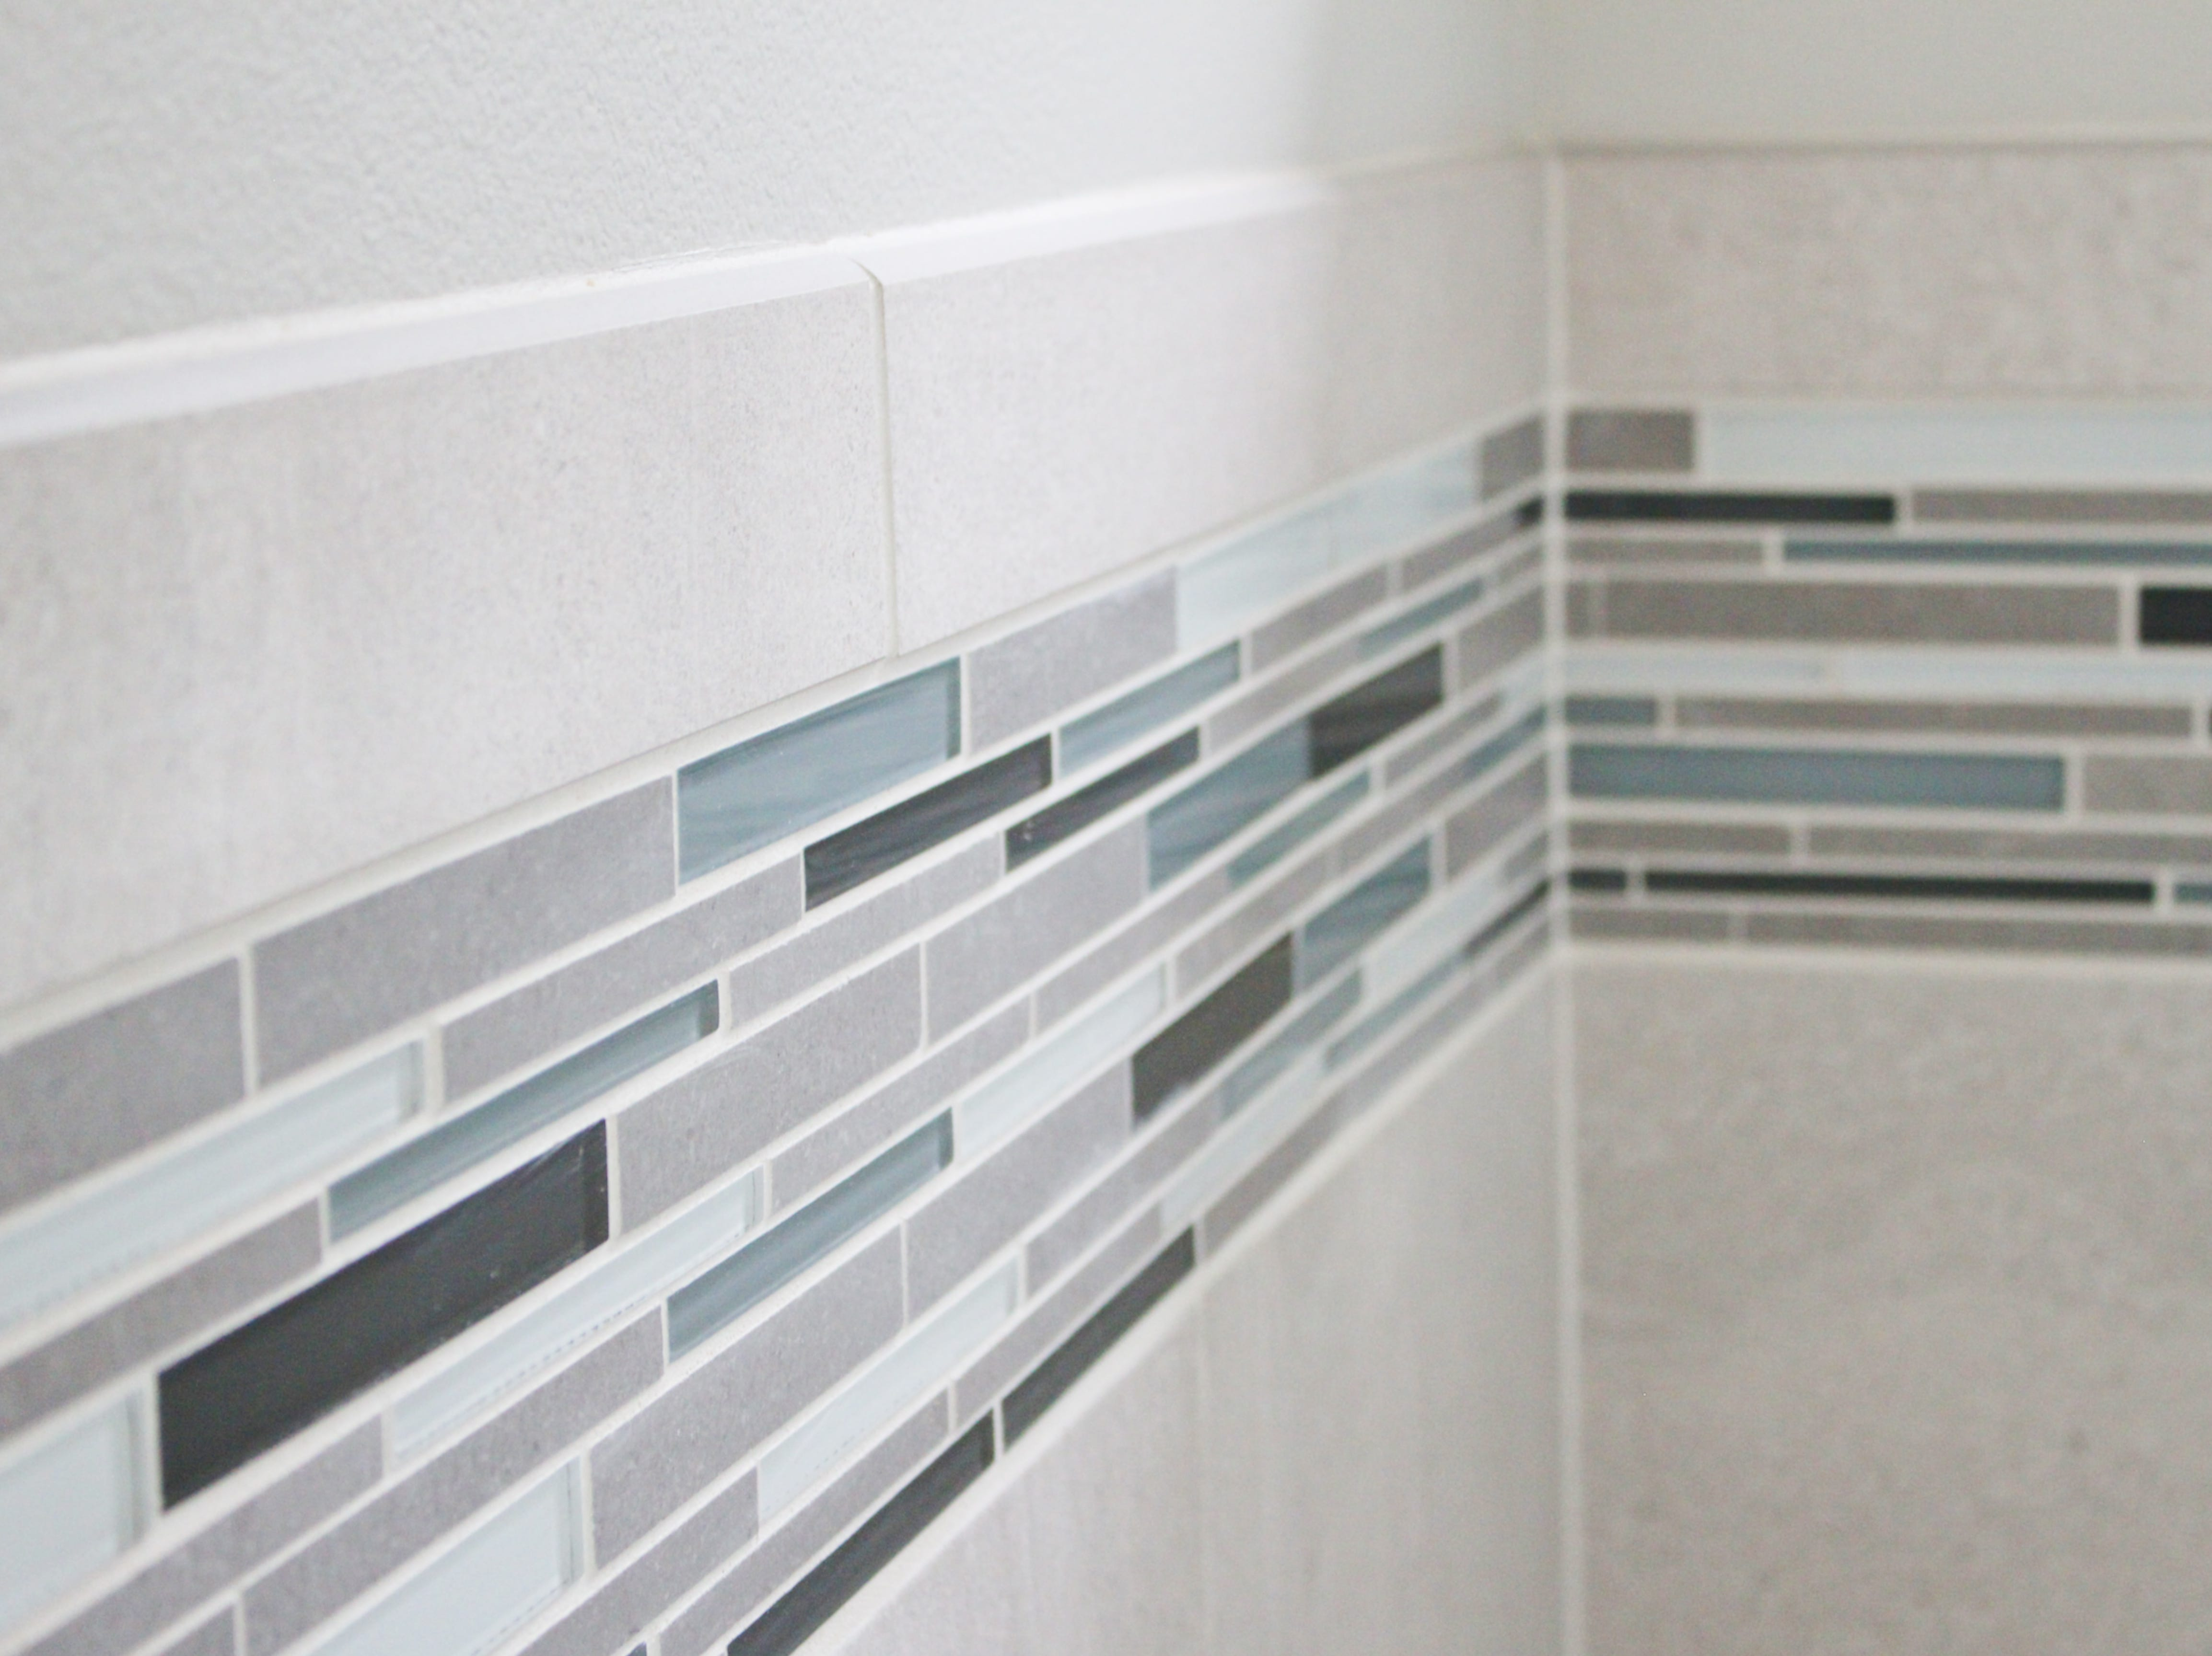 The glass of the mosaic tile is a combination of cool gray, earthy beige, and subtle blue-gray.